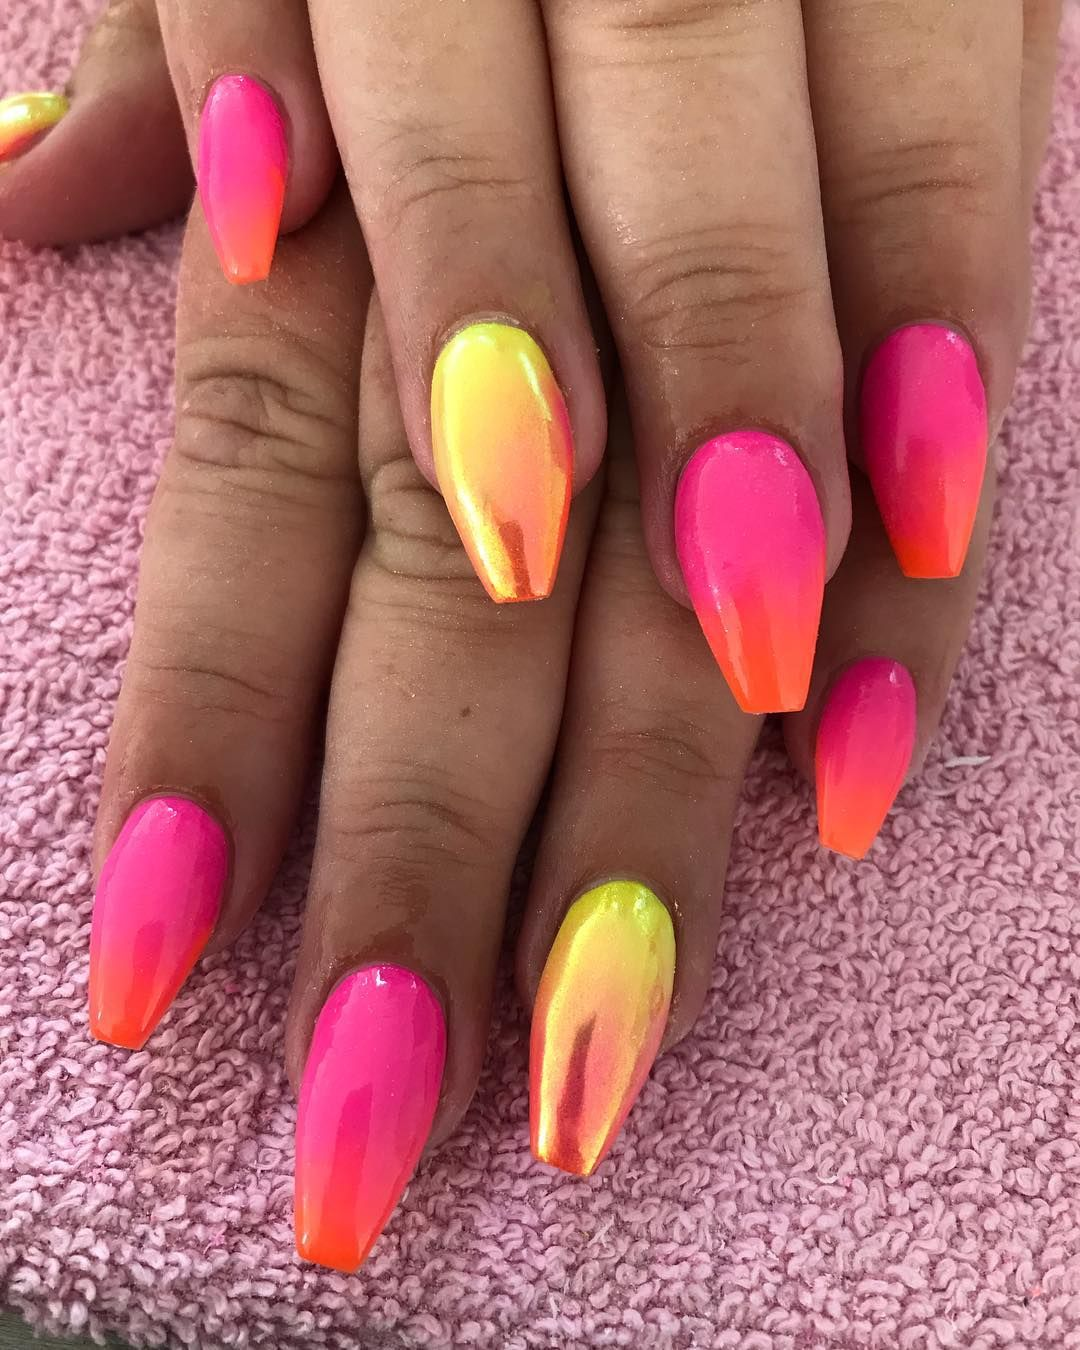 Nails Neon Nails Summer Acrylic Nails Yellow Nails